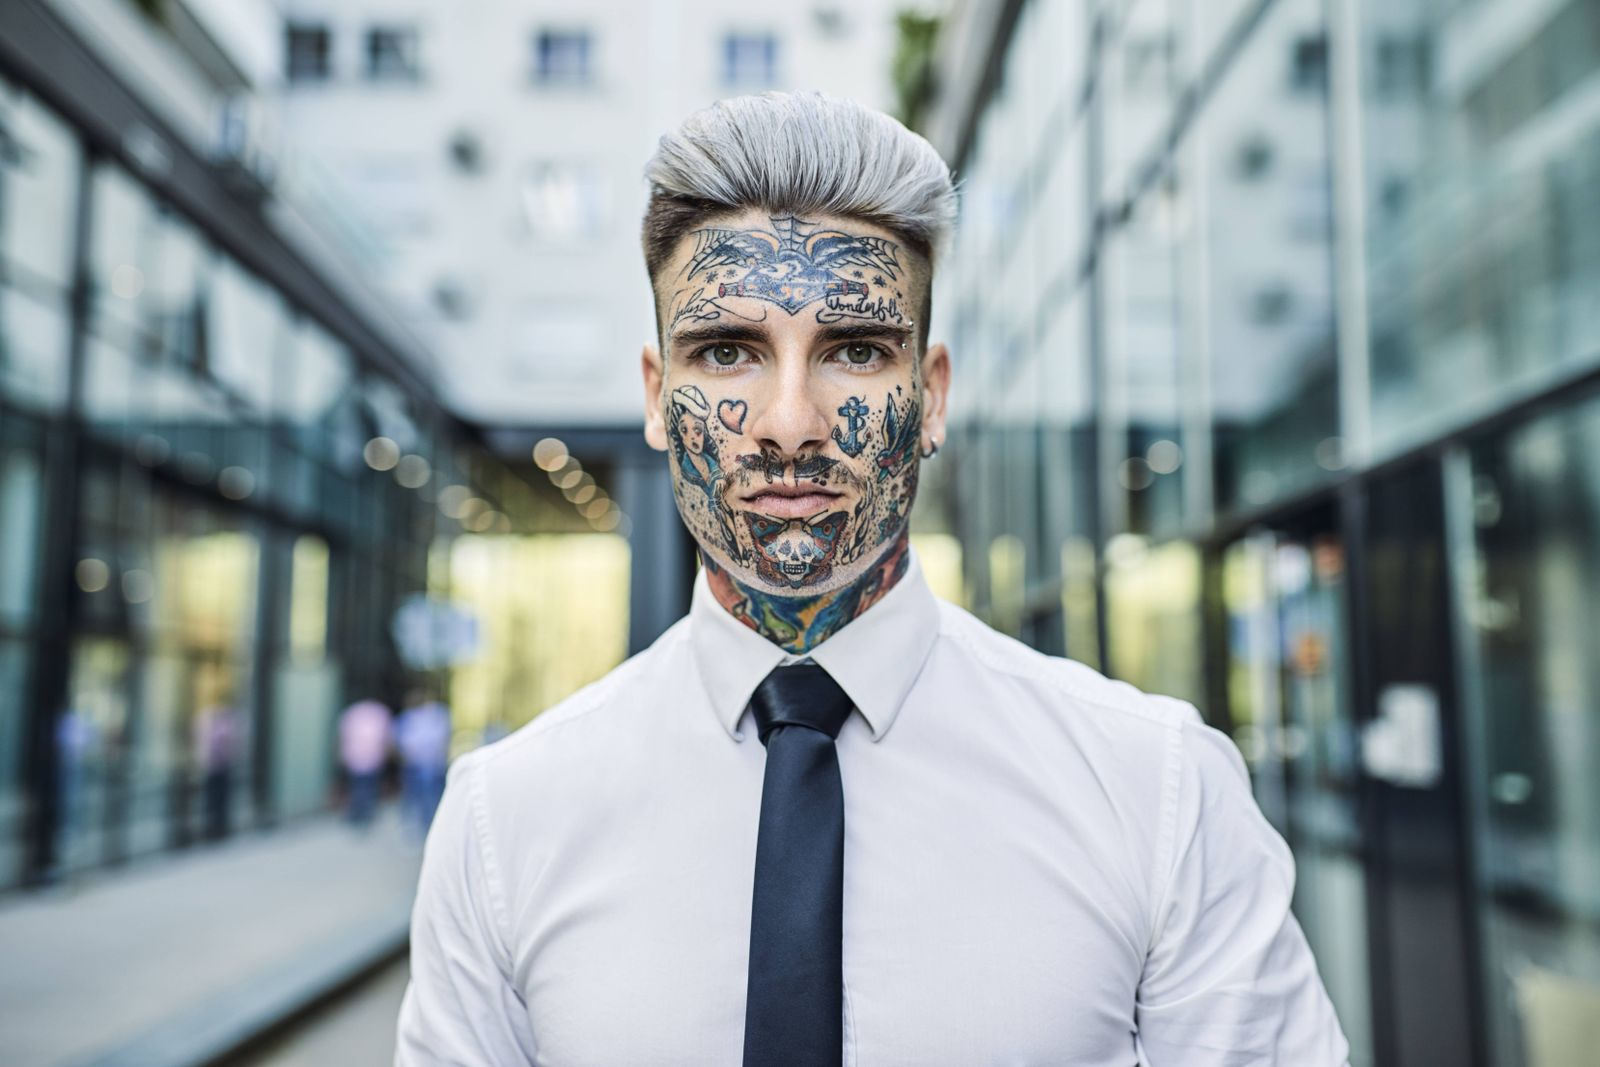 Young businessman with tattooed face portrait model released Symbolfoto property released PUBLICATI